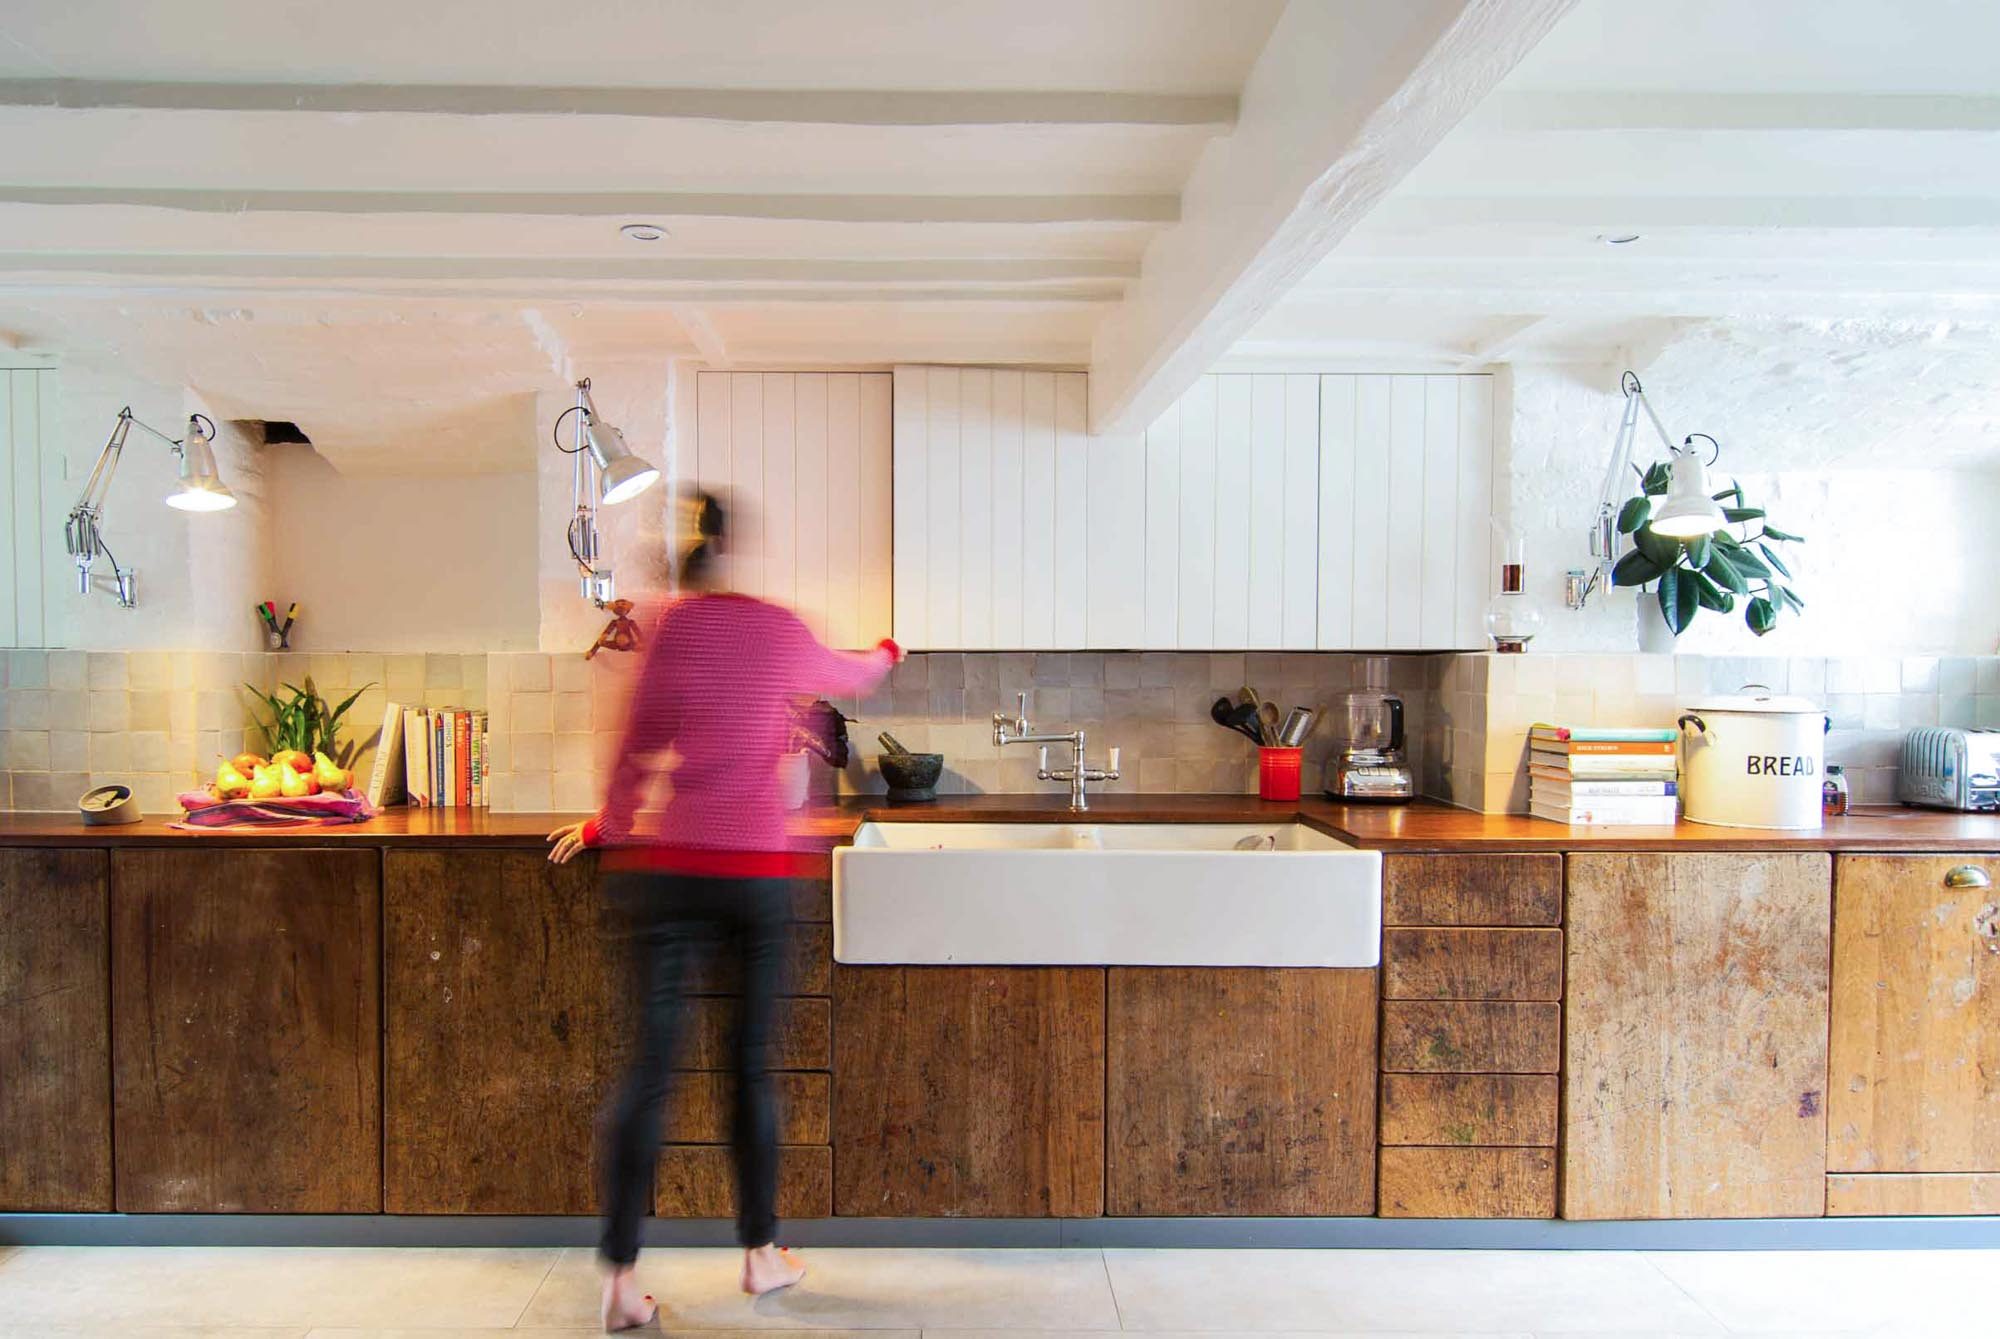 Barrel House - White colour palette brings focus to the timber kitchen cabinets.